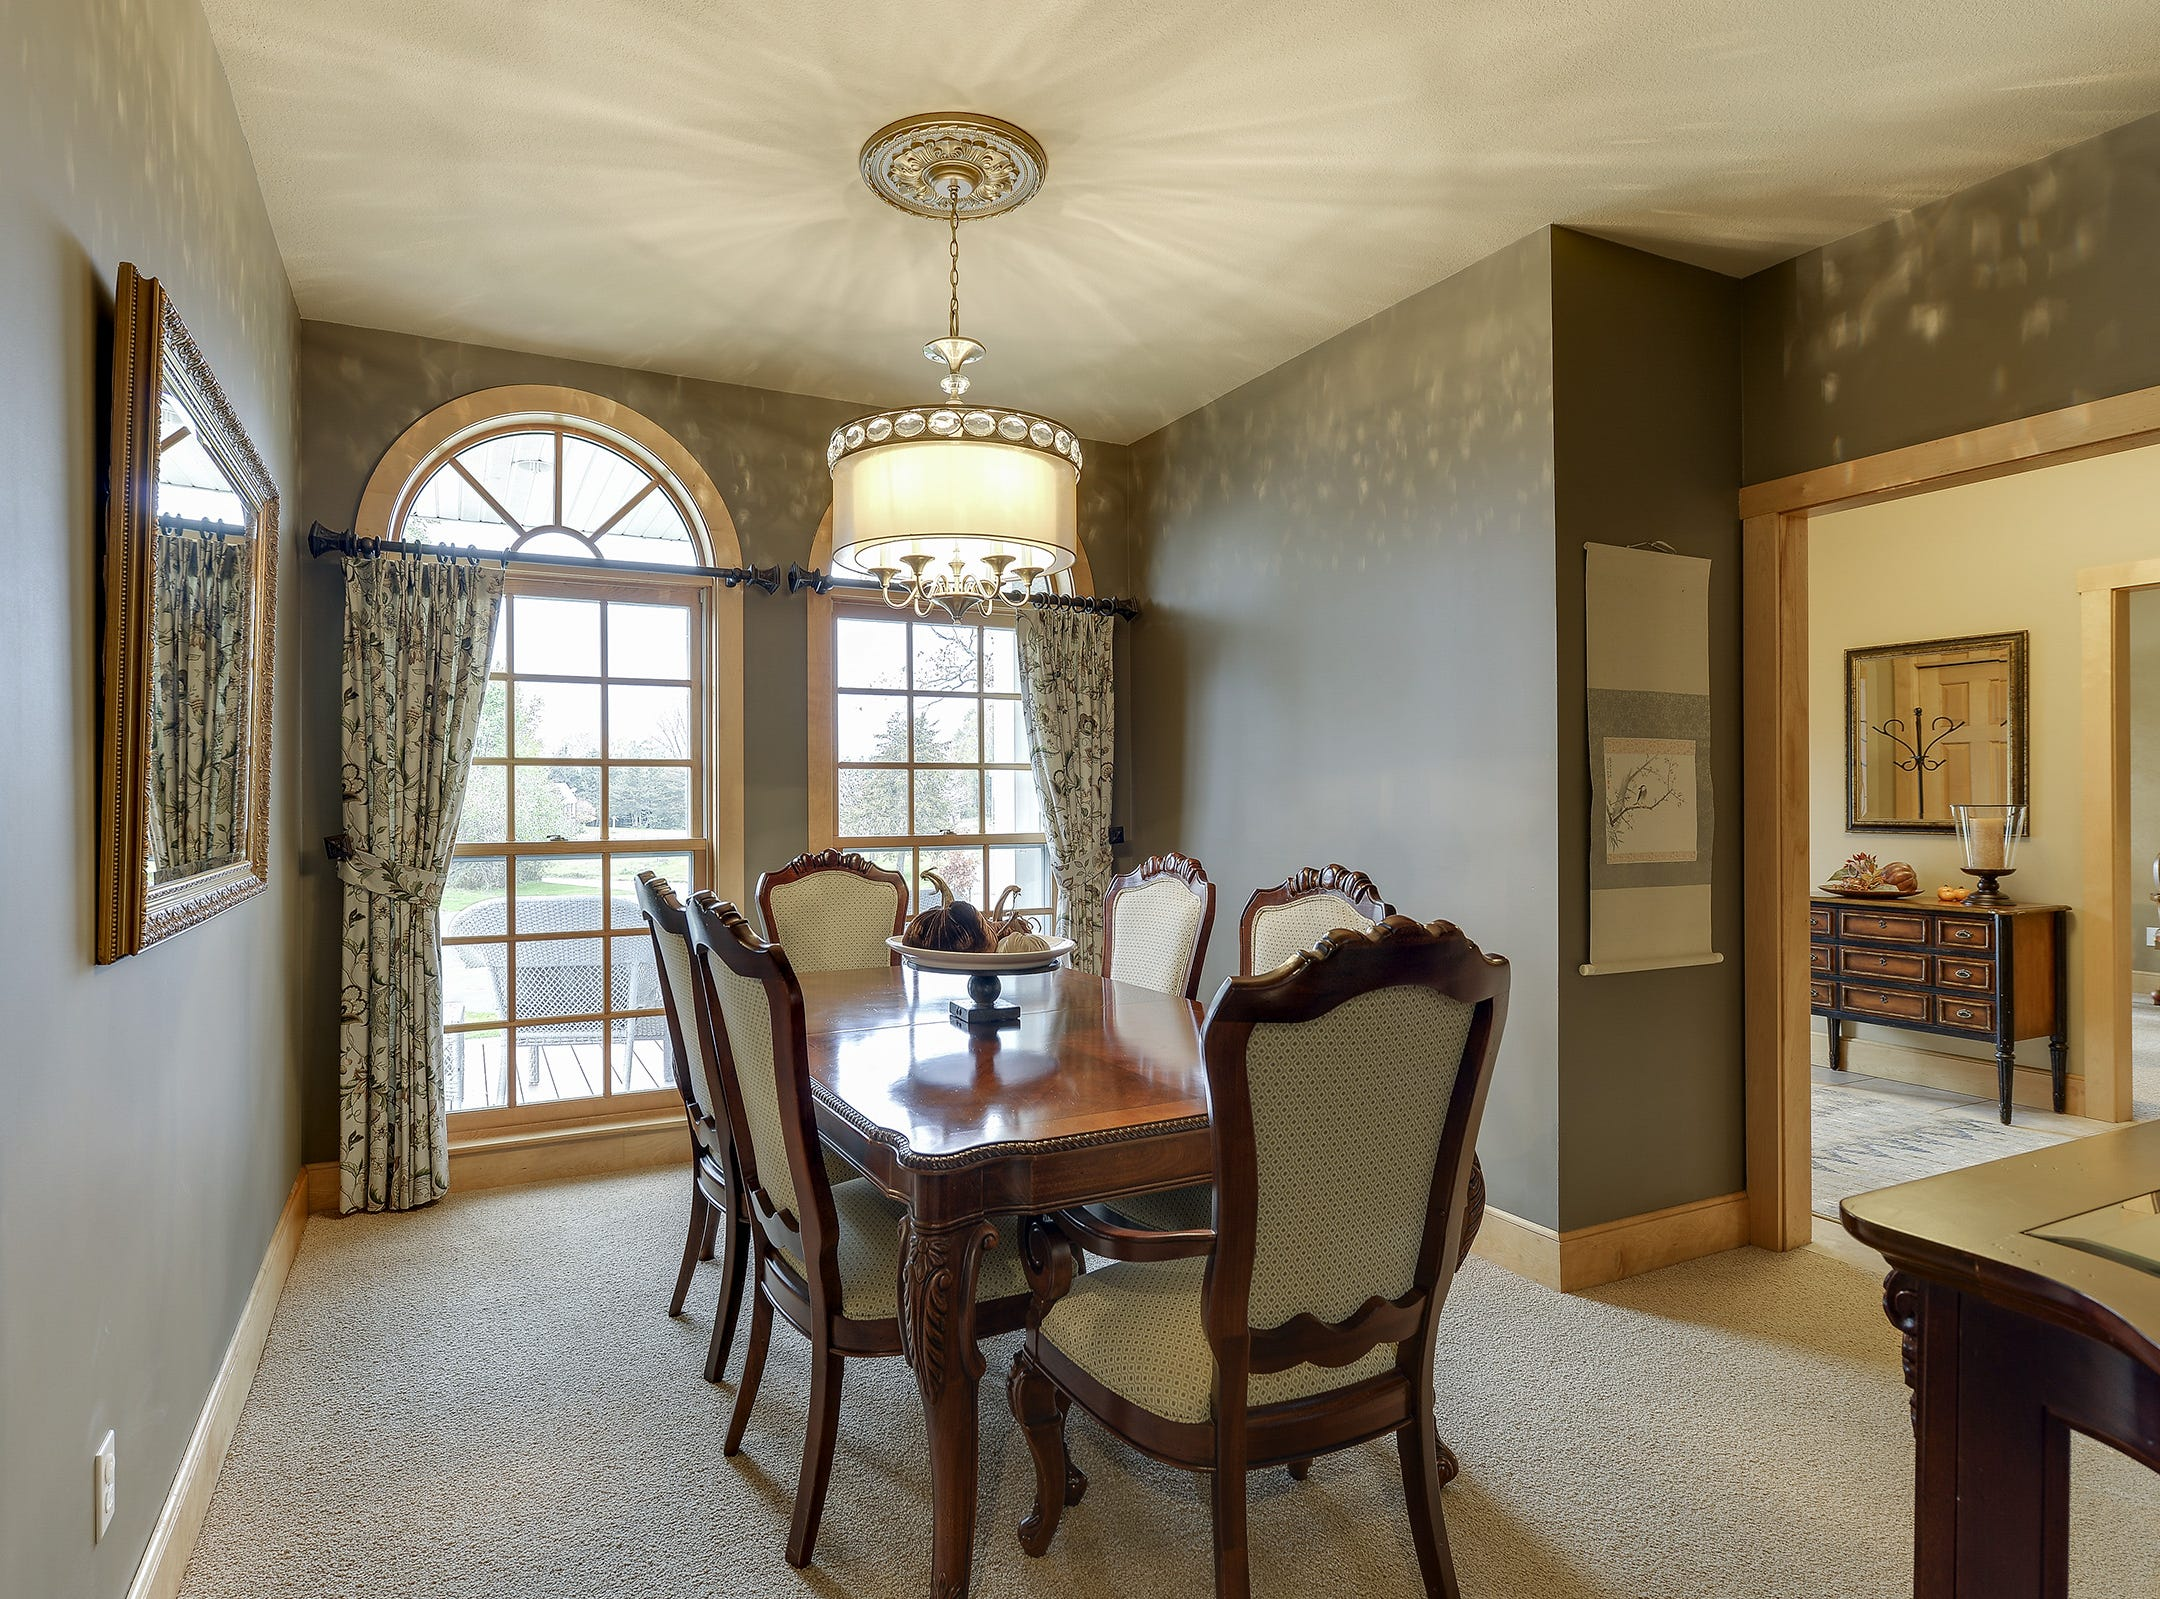 The formal dining room has floor-to-ceiling and wall-to-wall arched windows to let in the natural light of the outdoors.